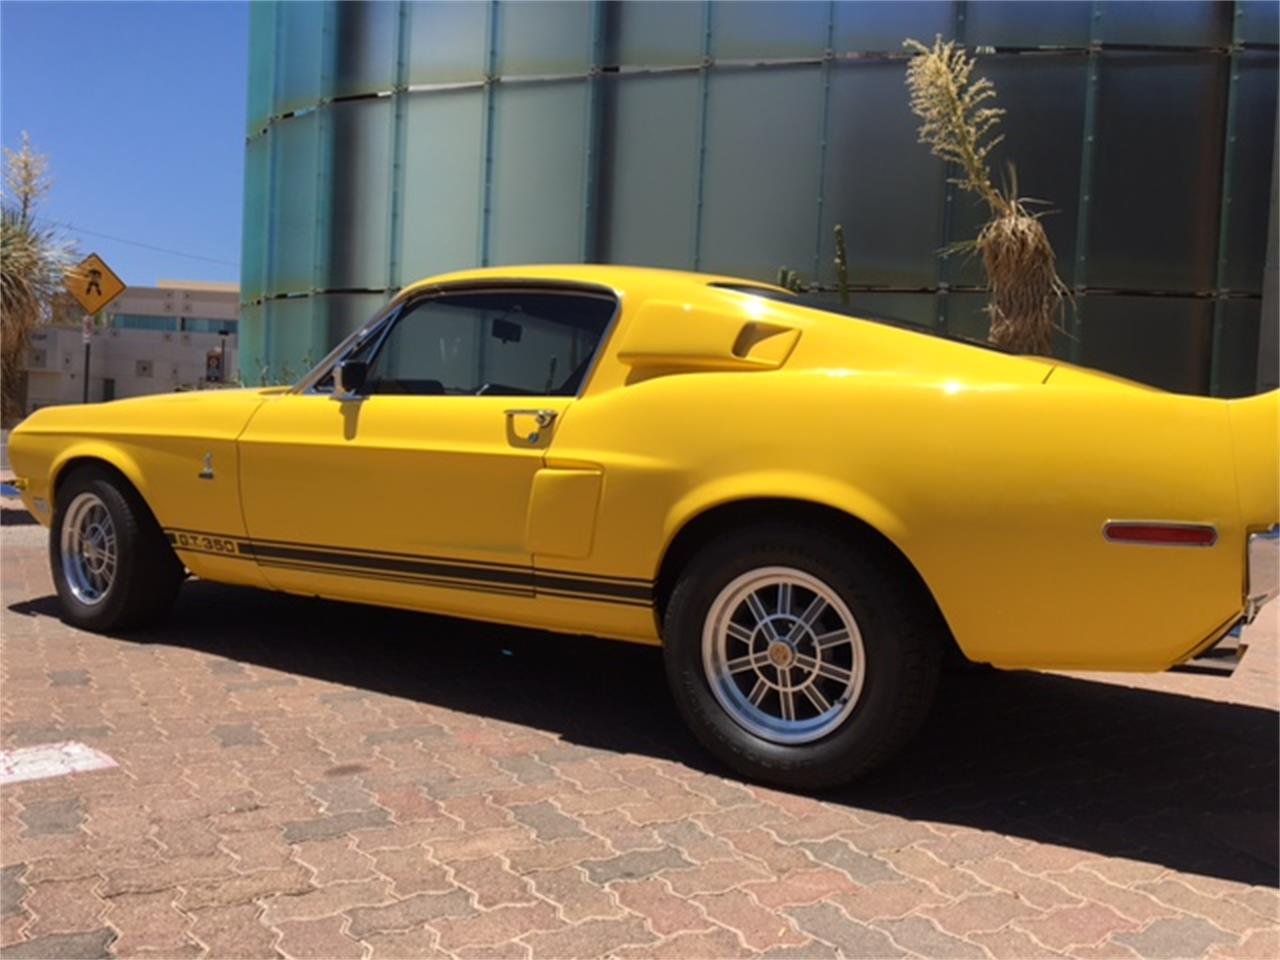 Large Picture of 1968 Mustang located in Scottsdale Arizona - $145,000.00 - JP9I